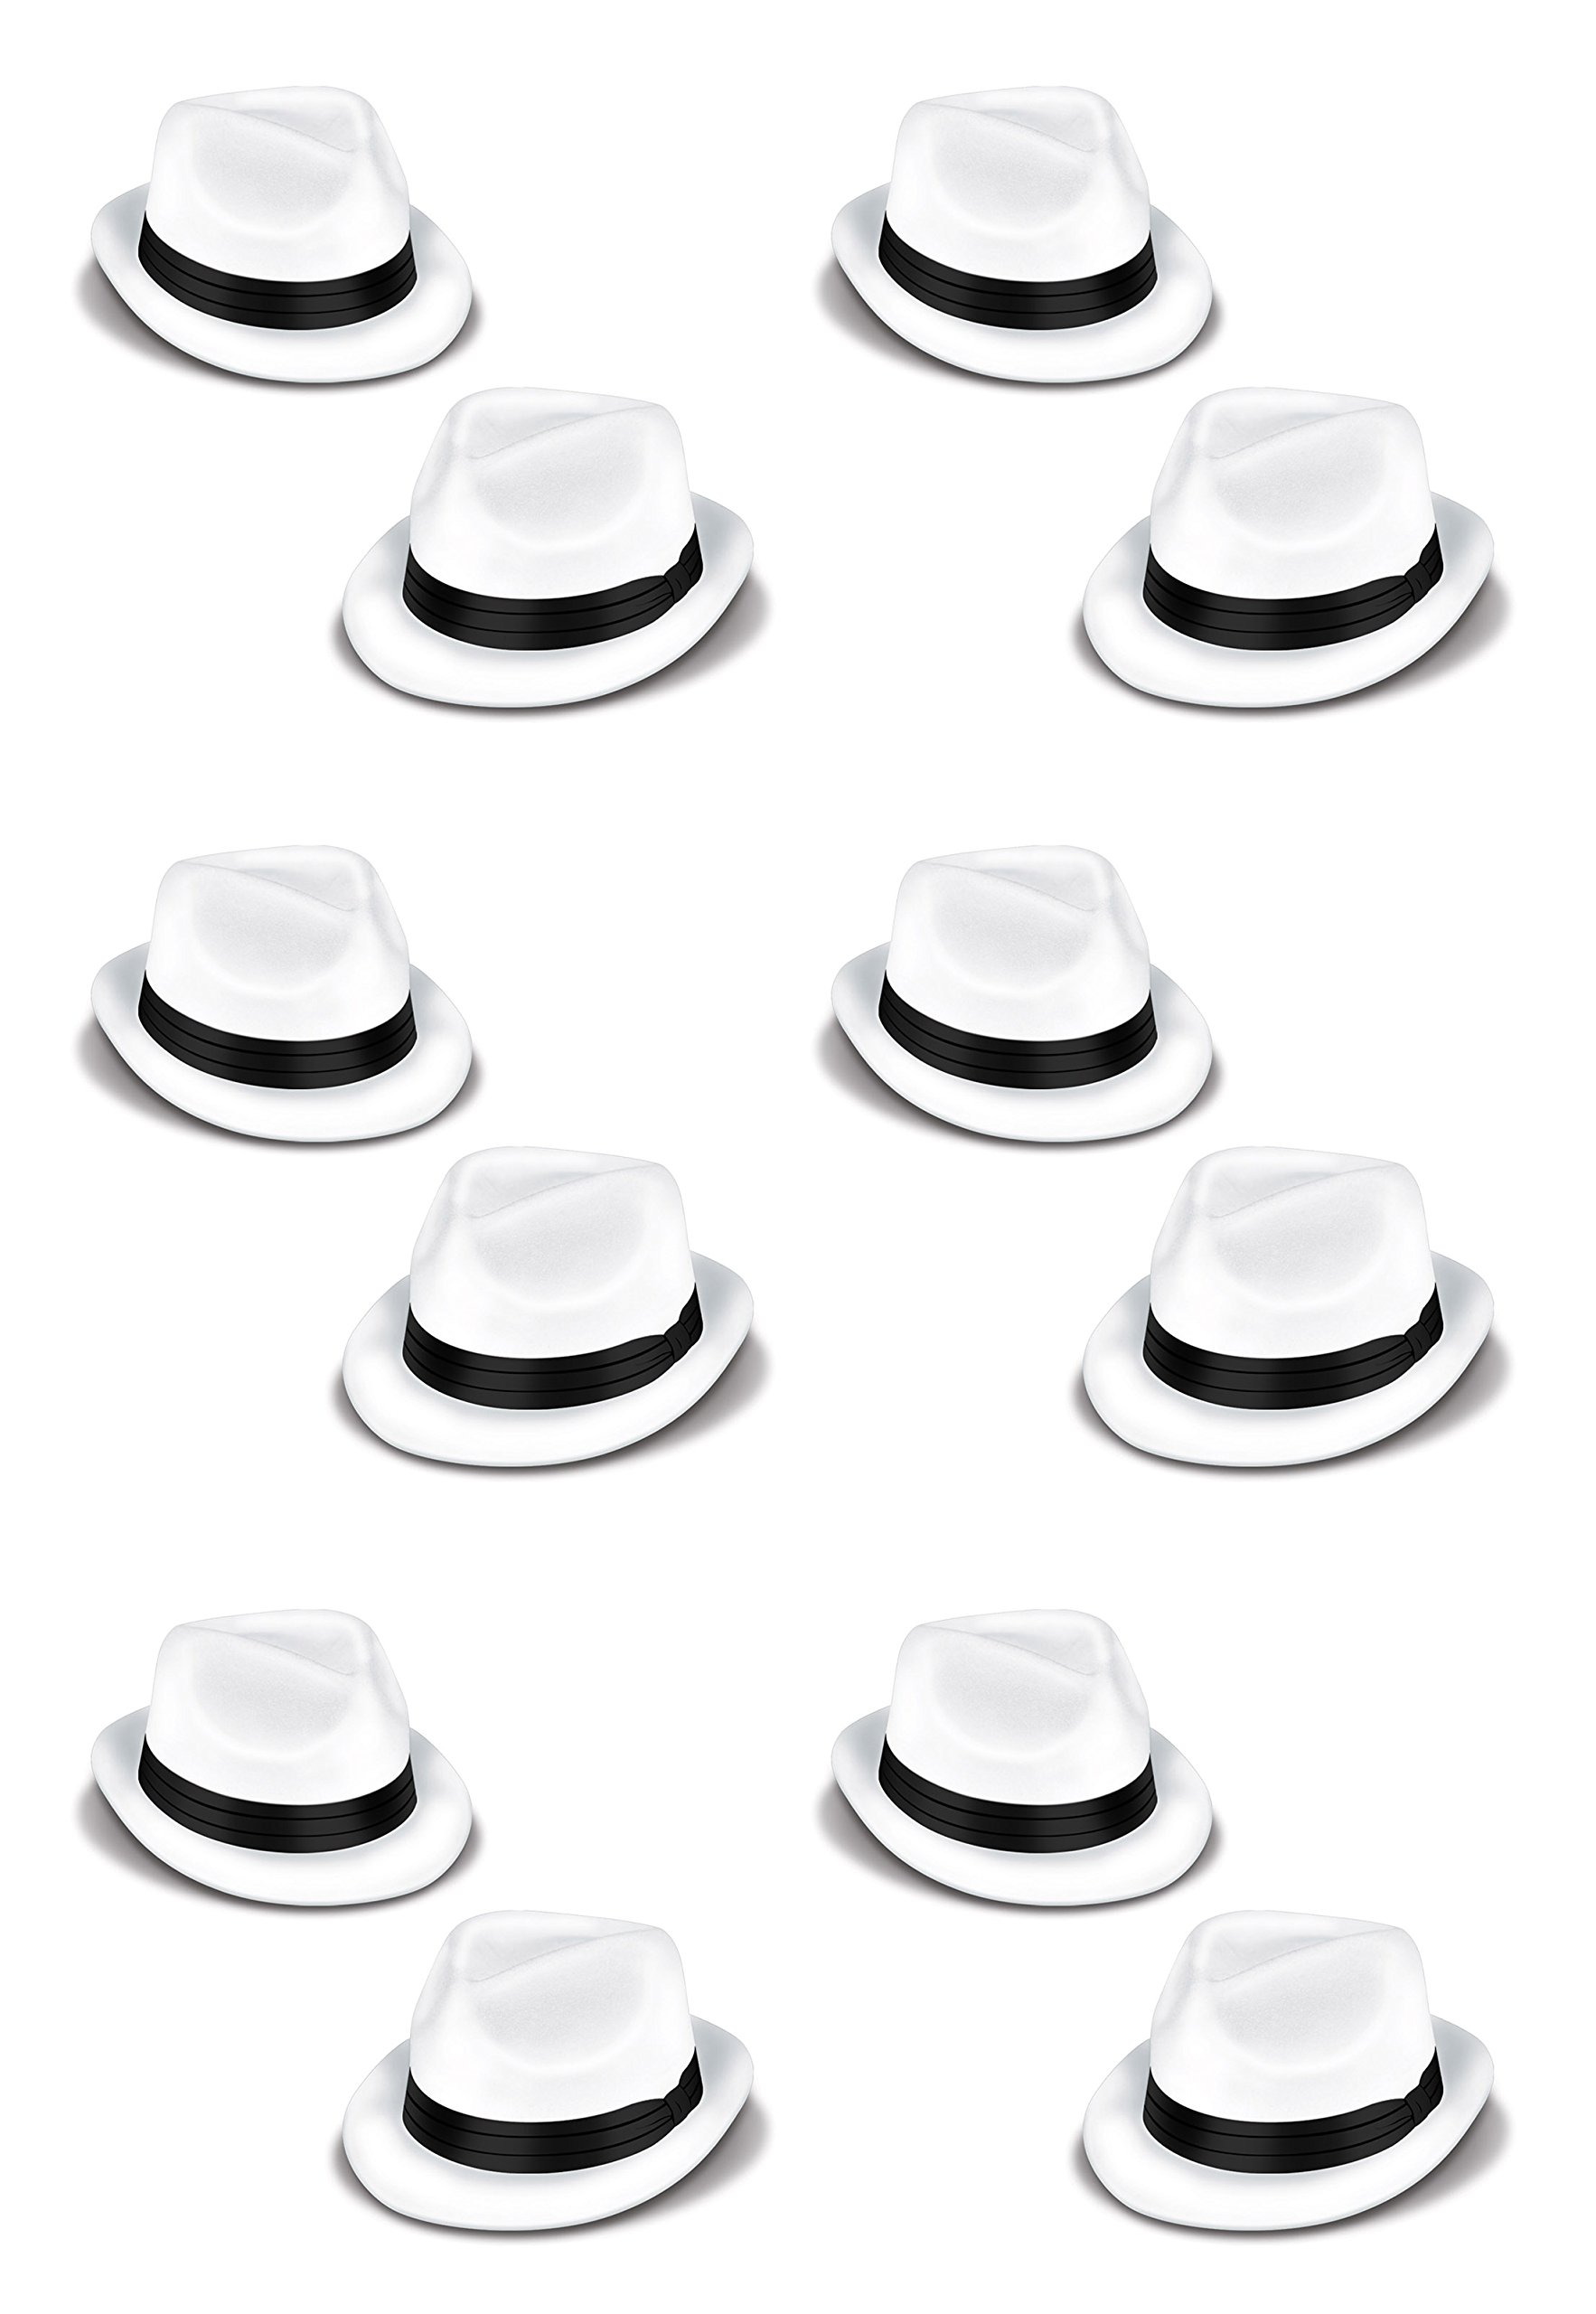 Beistle 60339-25 Velour Havana Chairman Hats, One Size Fits Most, White/Black, 12 Piece Pack by Beistle